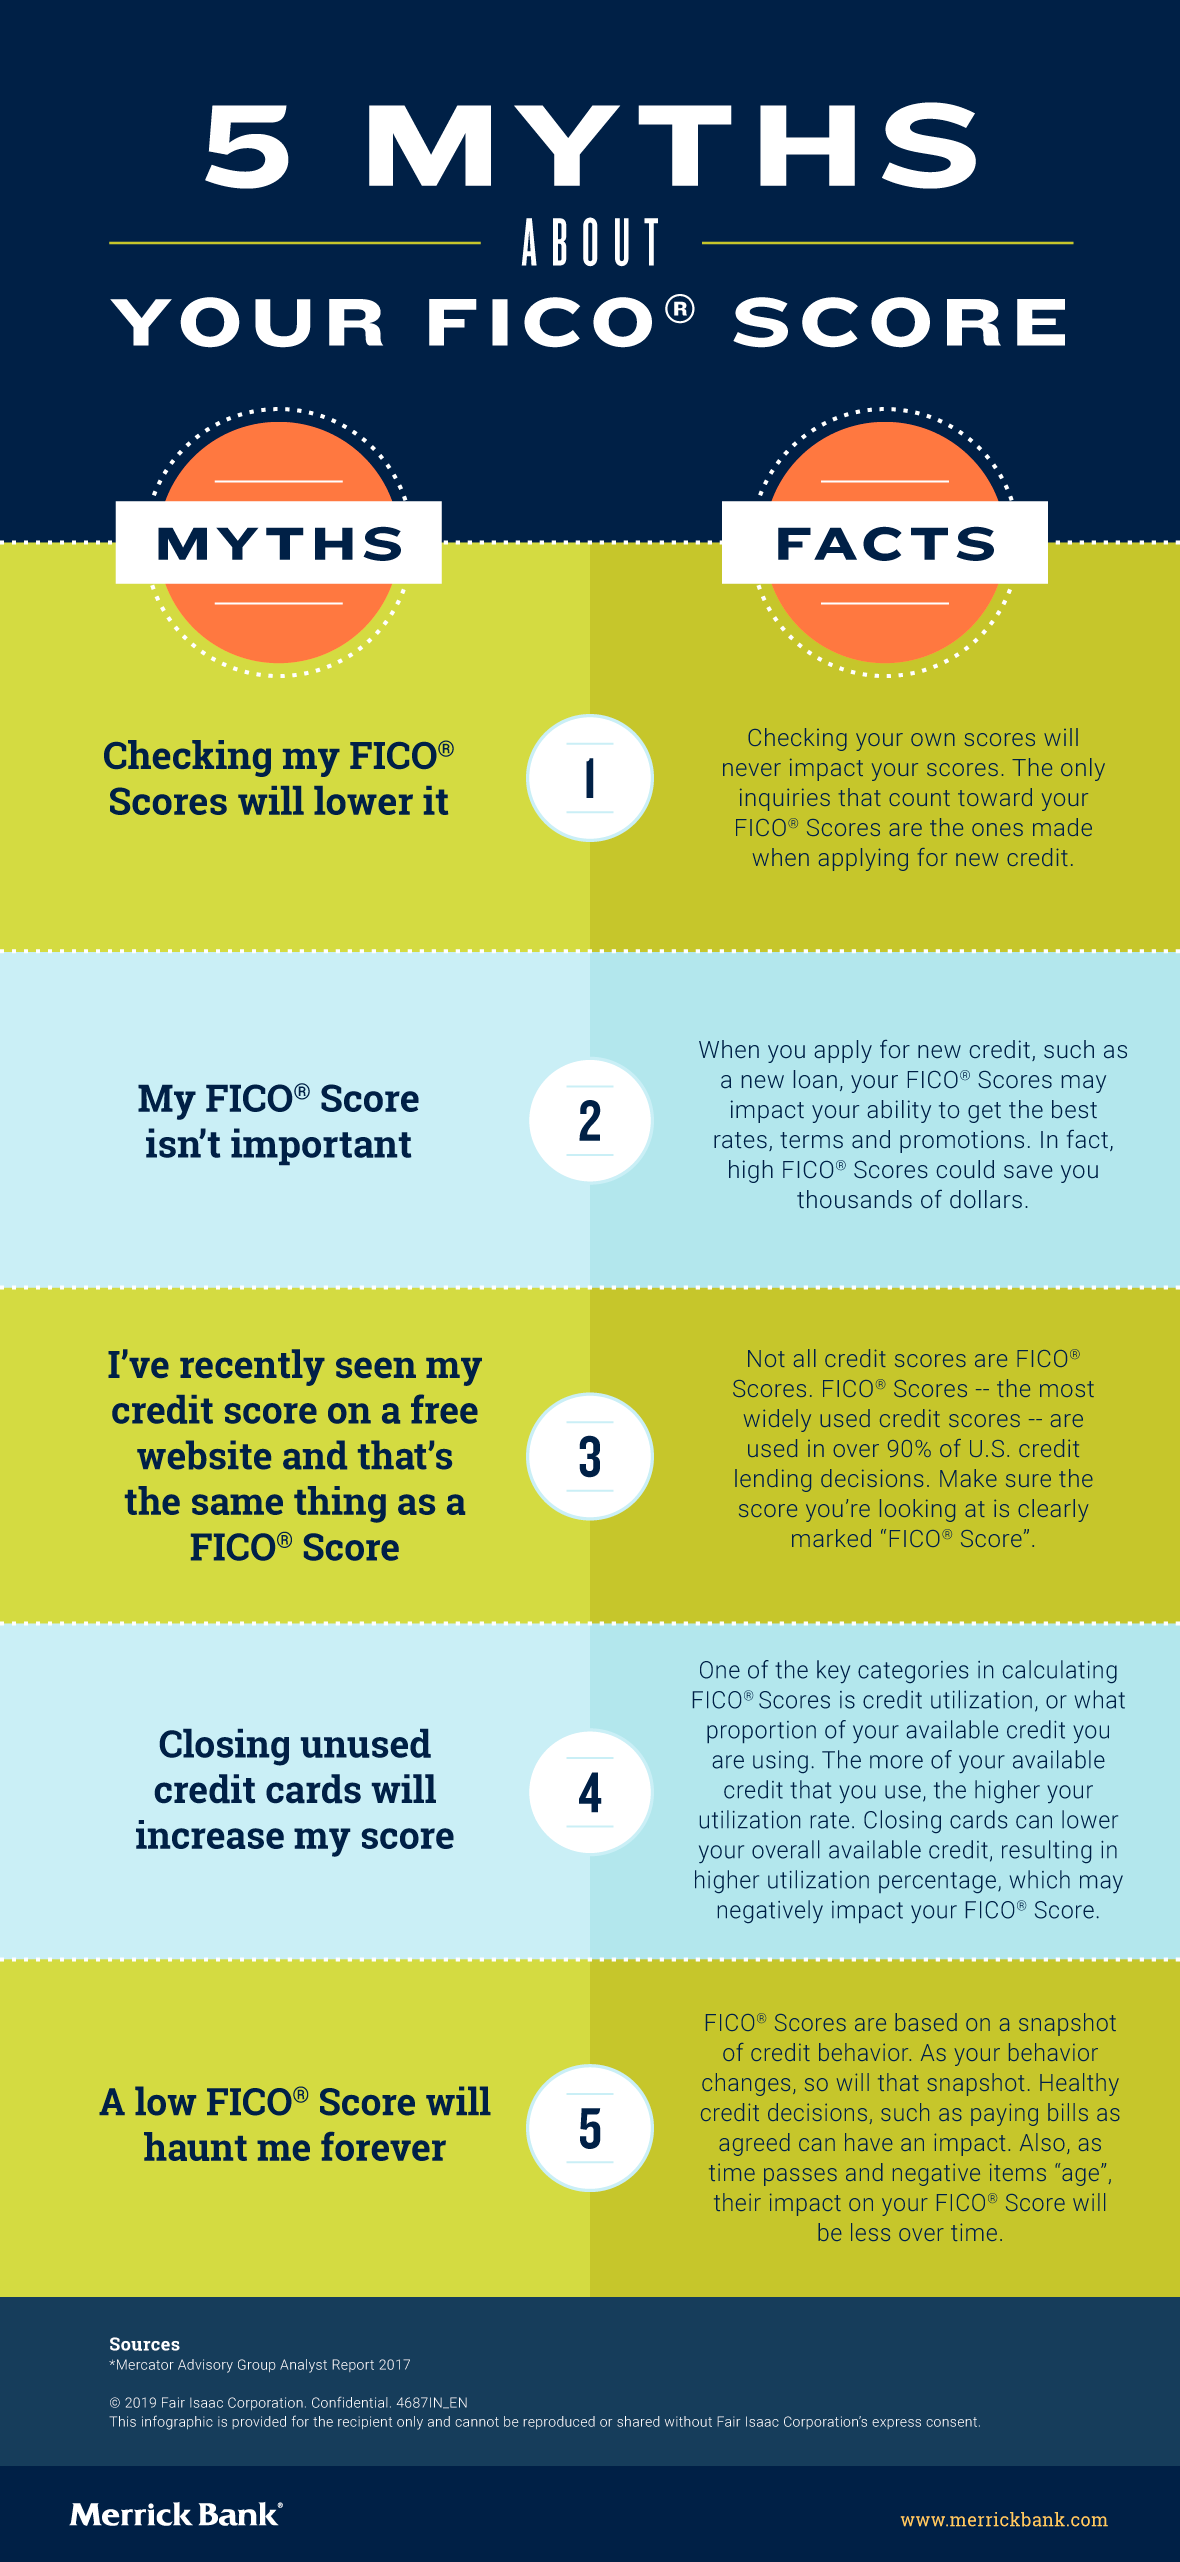 5 Myths About Your FICO Score